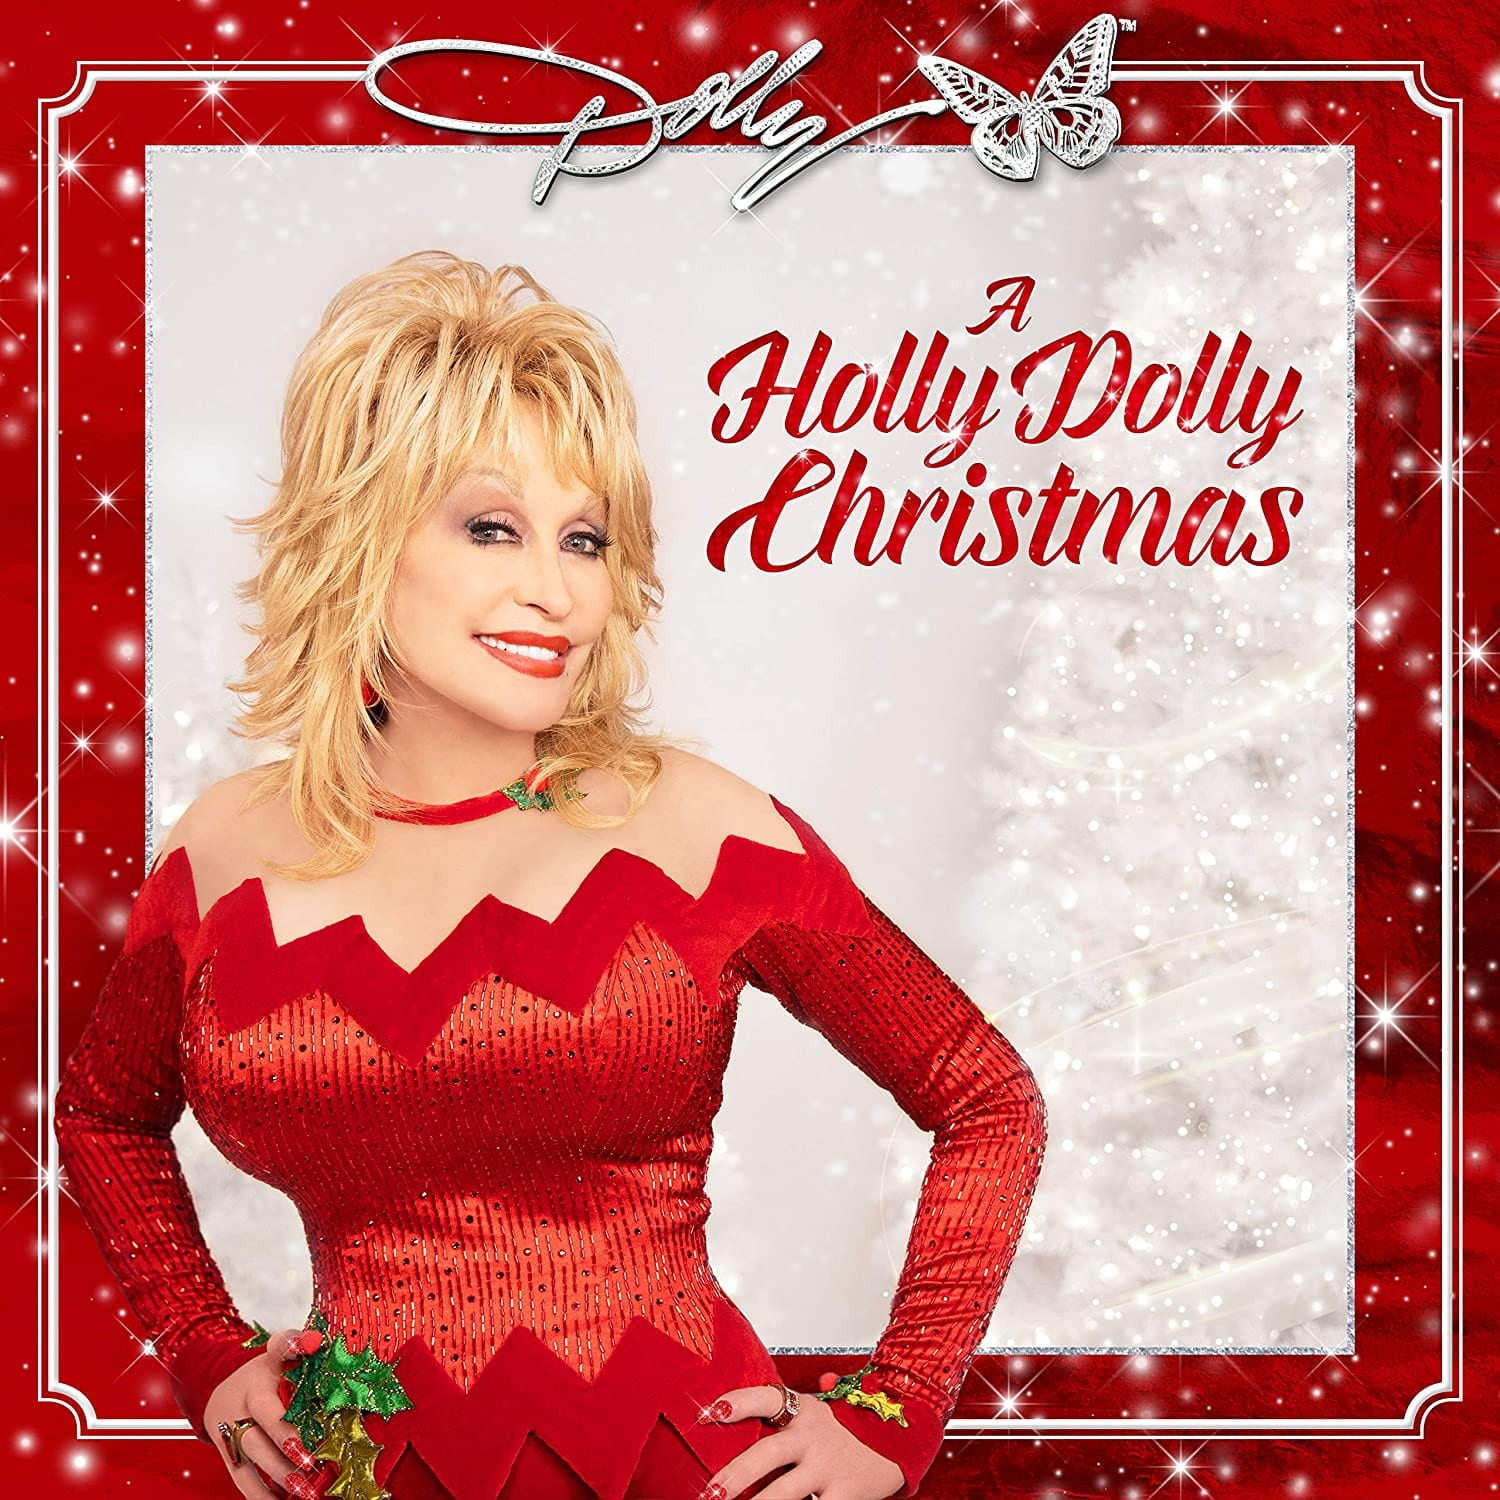 Dolly Parton - A Holly Dolly Christmas [LP] (Opaque Red Vinyl)